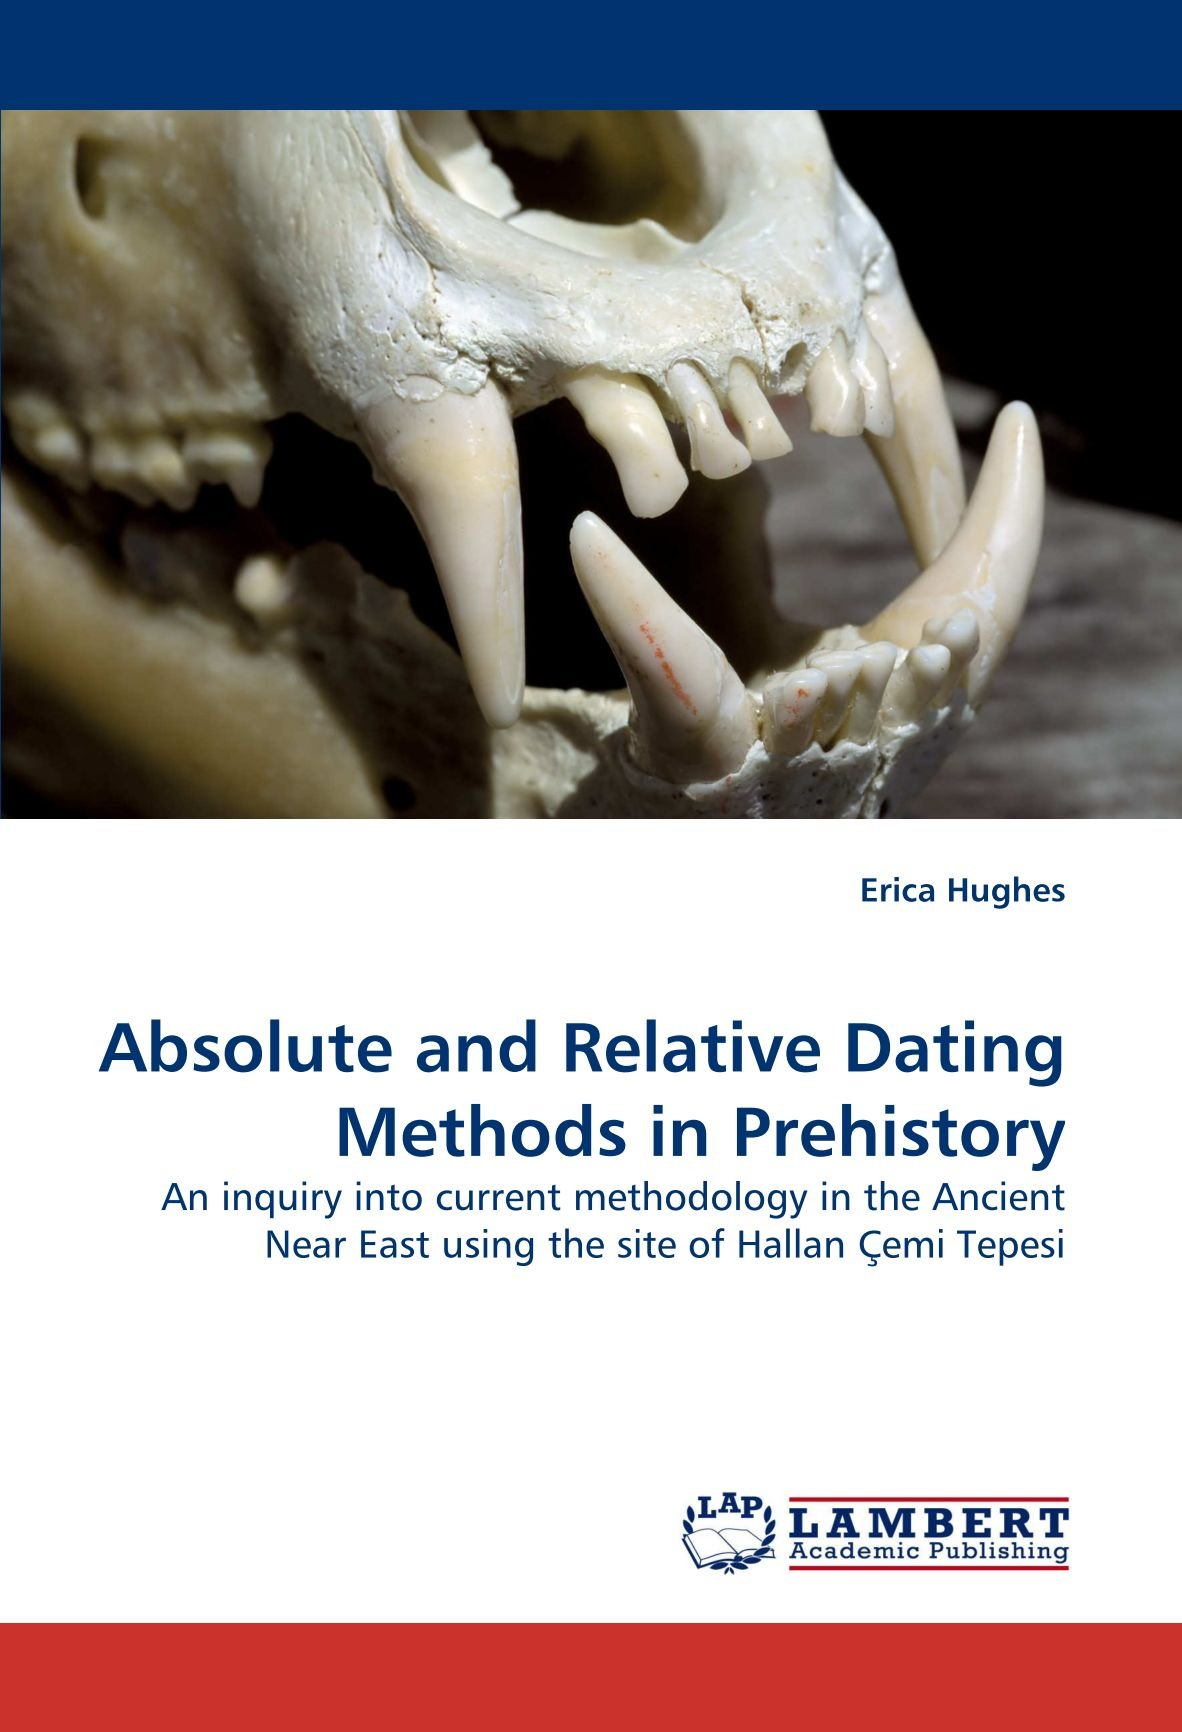 difference between absolute and relative dating method